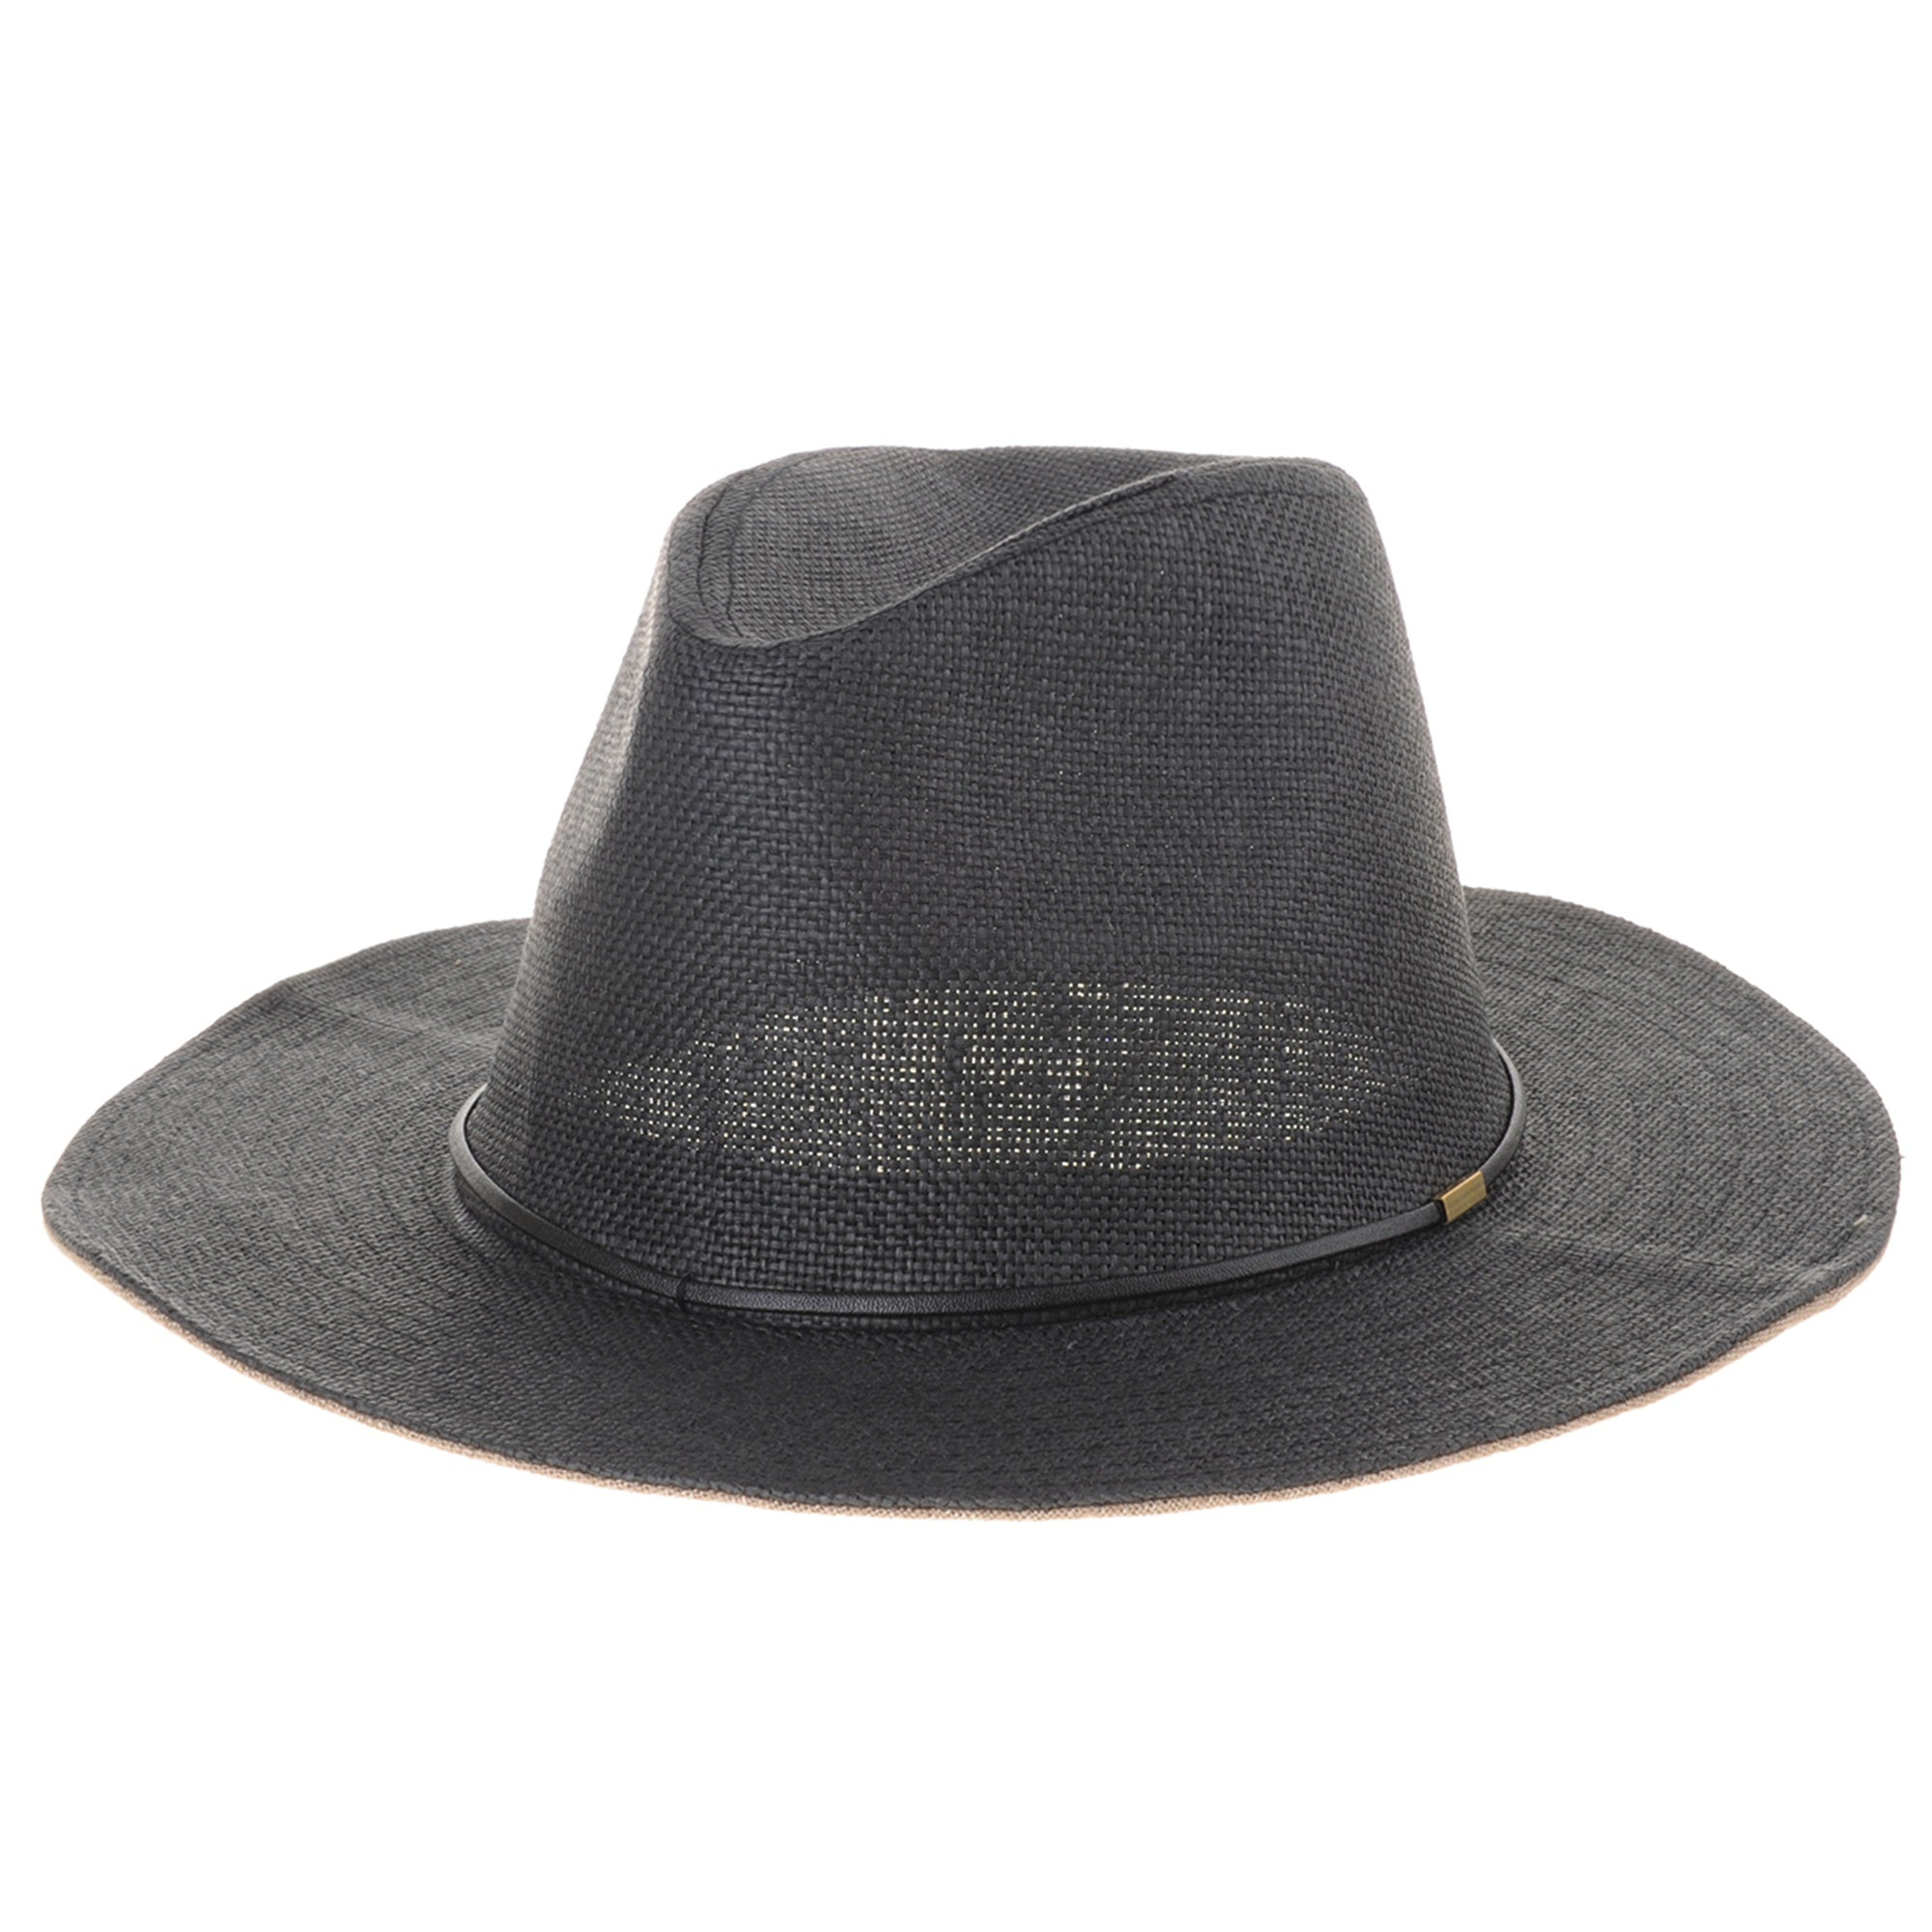 Fedora Panama Hat Faux Leather Banded Wide Brim